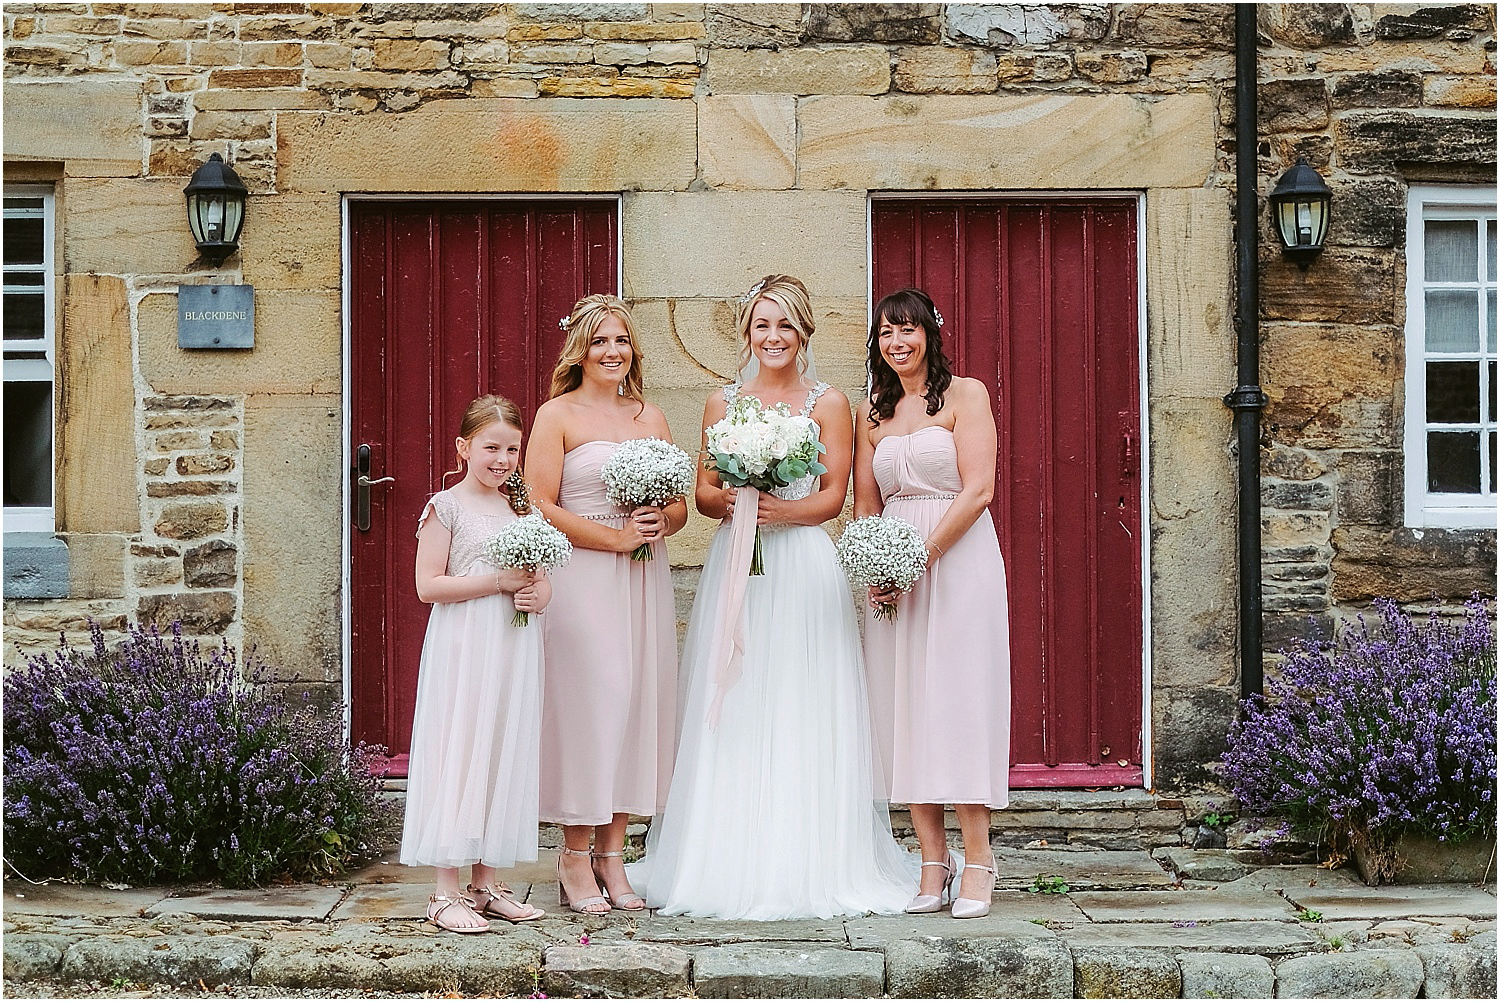 Wedding at Healey Barn - wedding photography by www.2tonephotography.co.uk 019.jpg